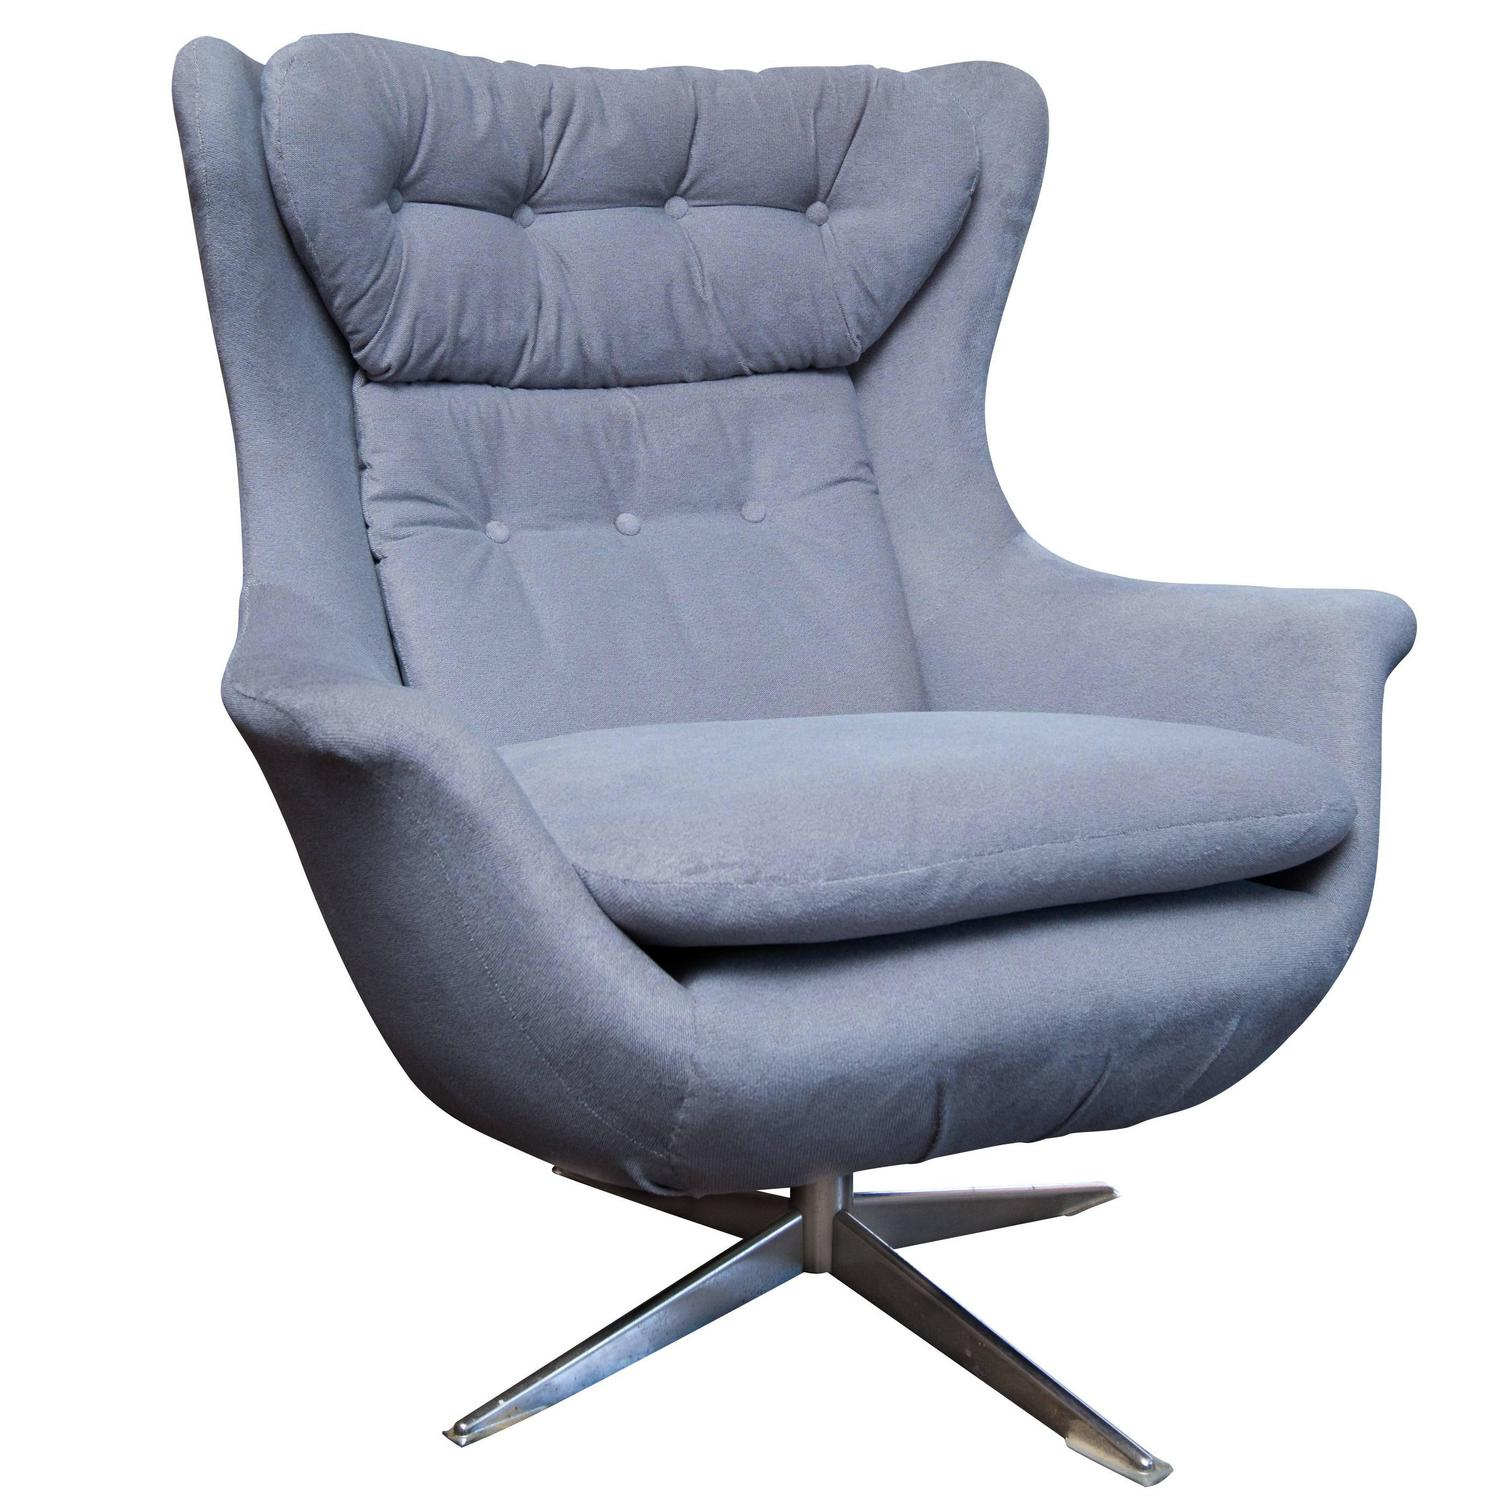 Mid Century Danish Modern Swivel Lounge Chair at 1stdibs